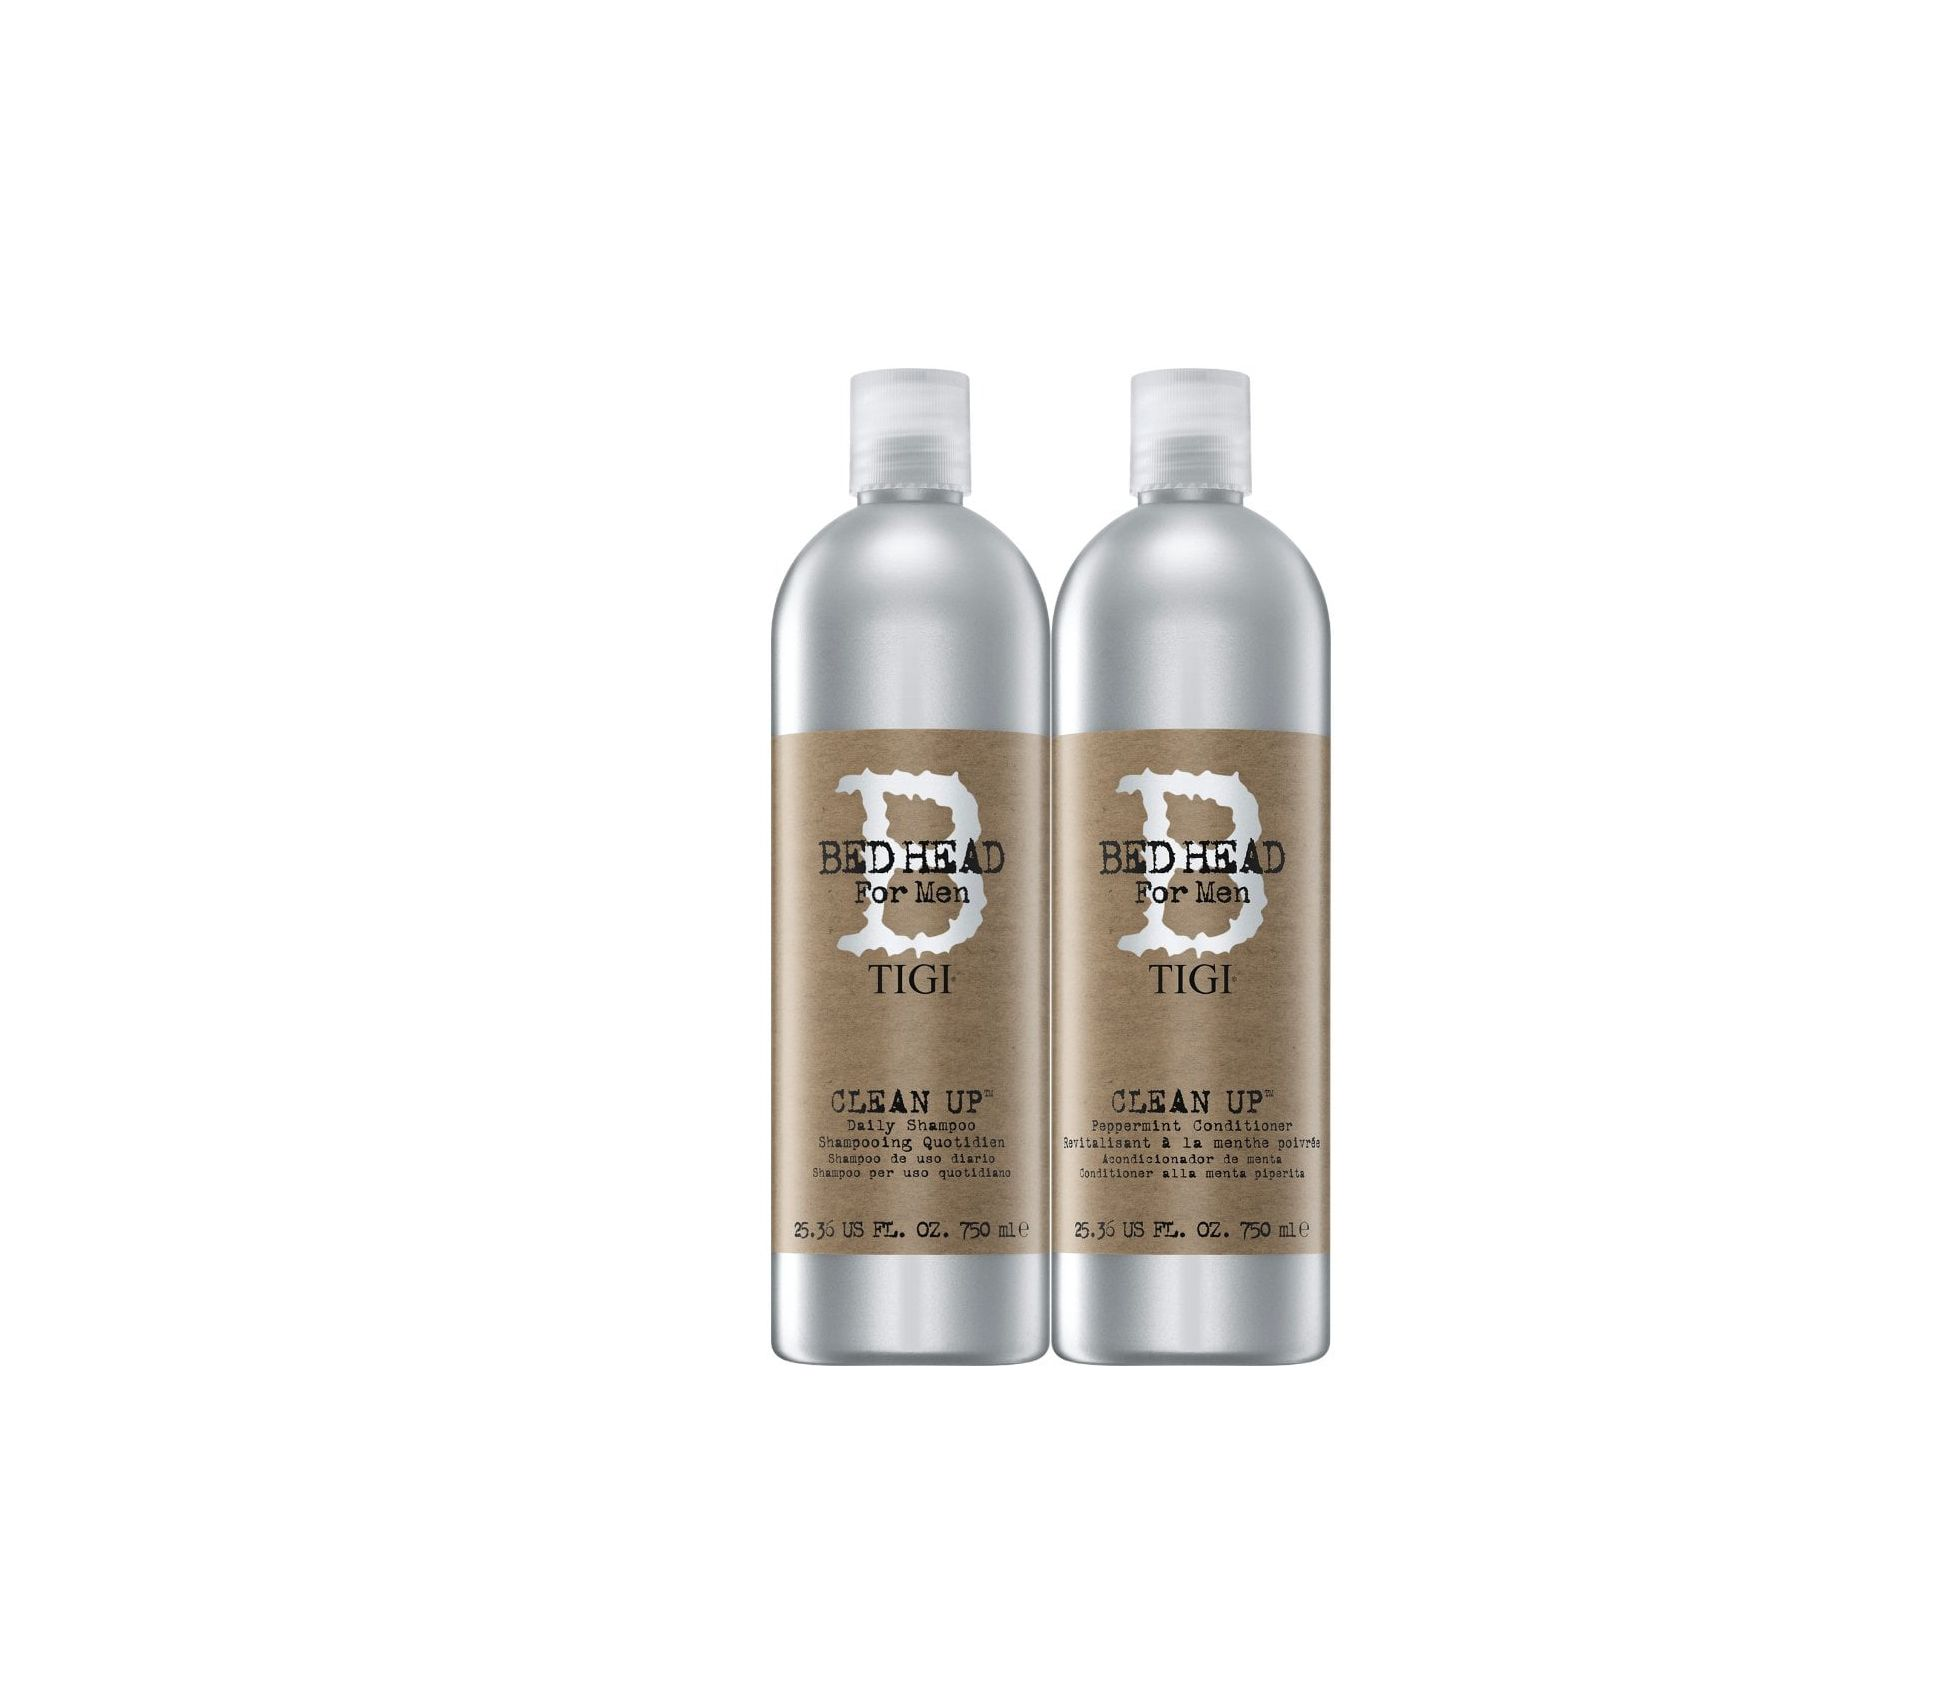 Almost 70% off Bed Head's Thickening Shampoo in Today's Amazon Black Friday Sale